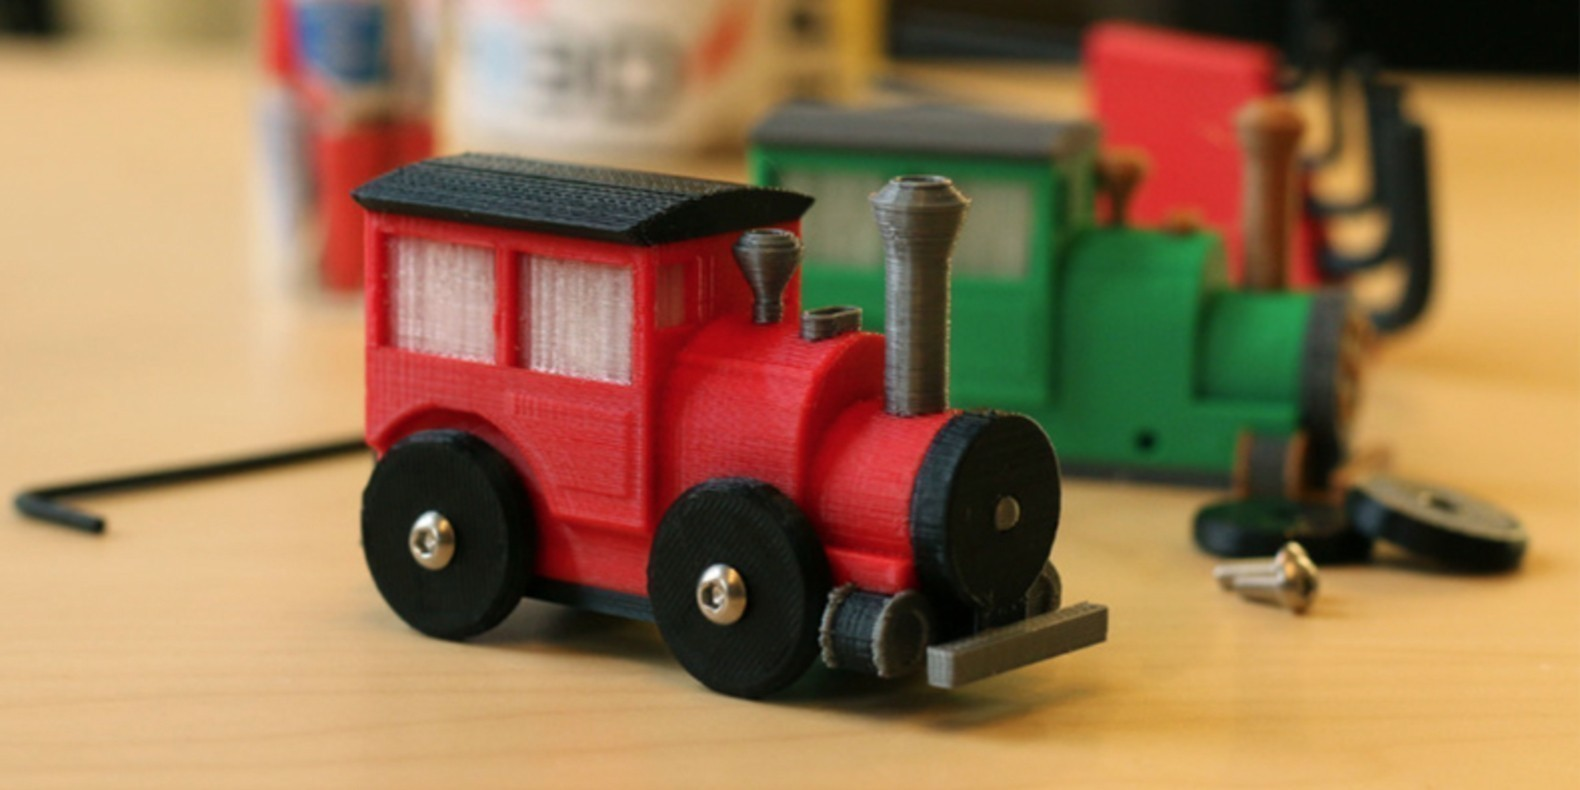 Discover in this new collection of 3D models all the 3D printer files related to train modeling